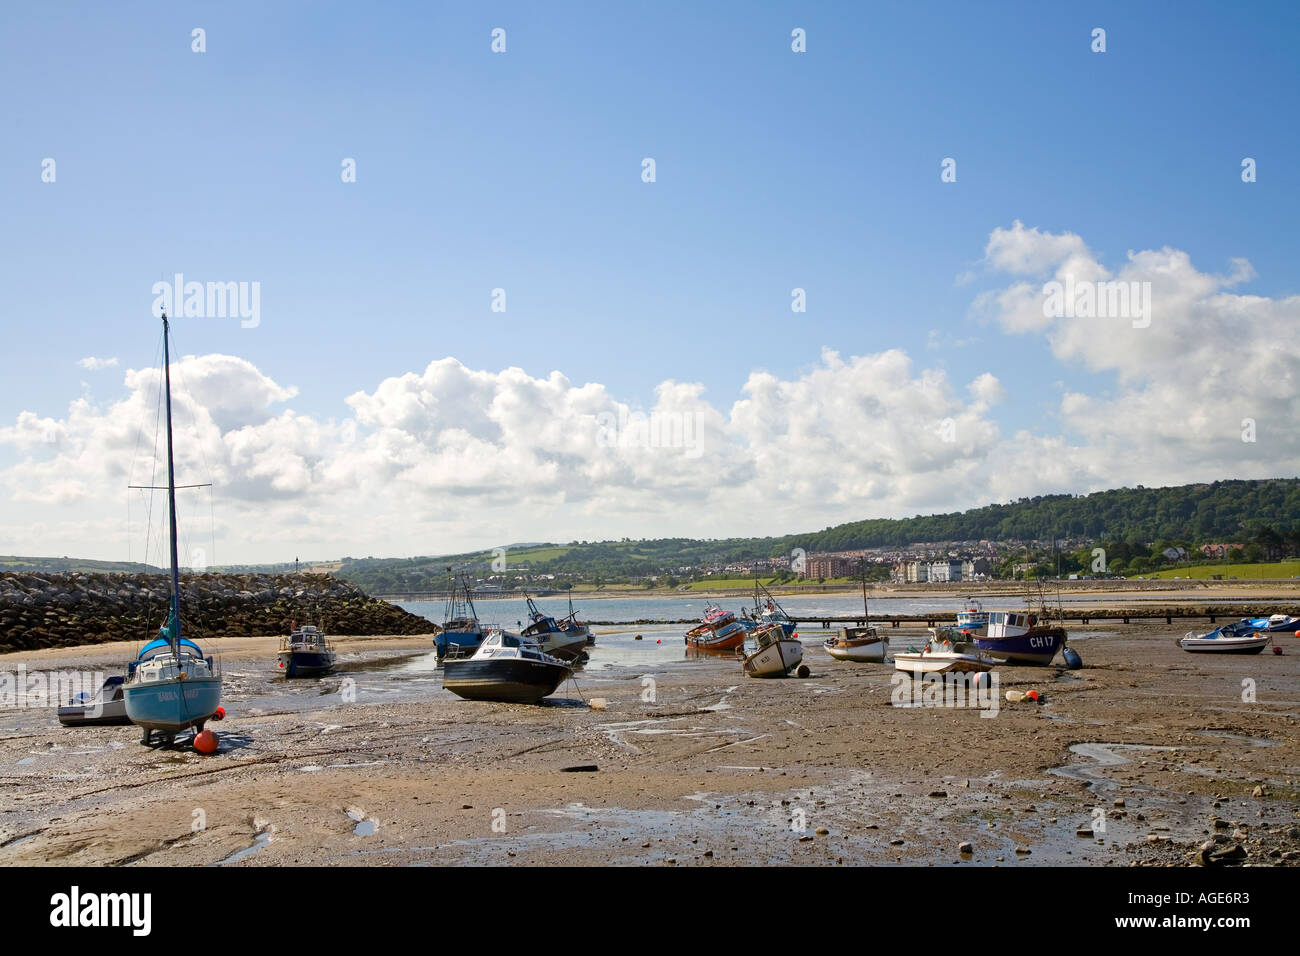 Boats on the beach at low tide Rhos on Sea Conwy Wales UK Stock Photo